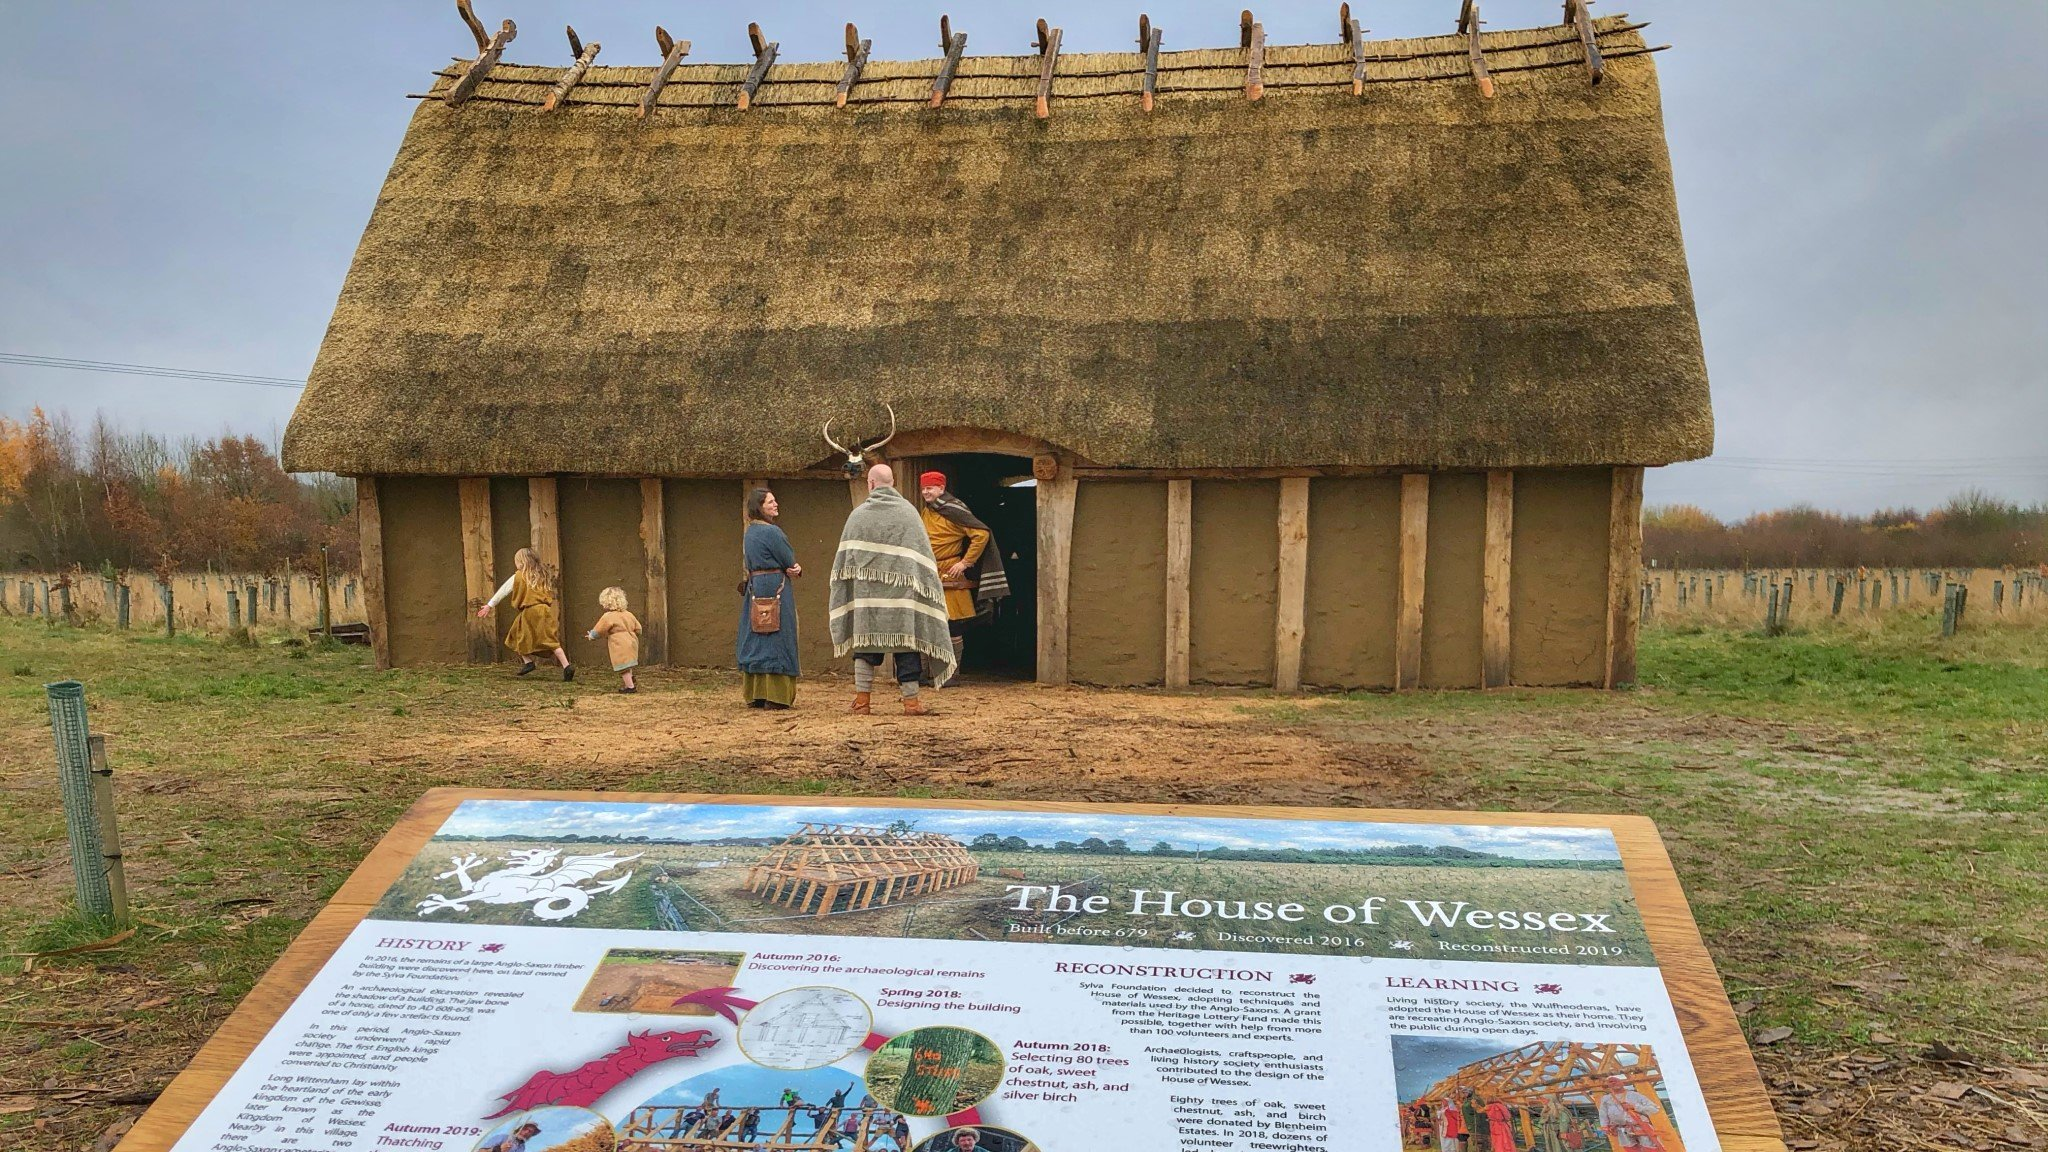 House of Wessex - A uniquely reconstructed Anglo-Saxon building in Long Wittenham, Oxfordshire